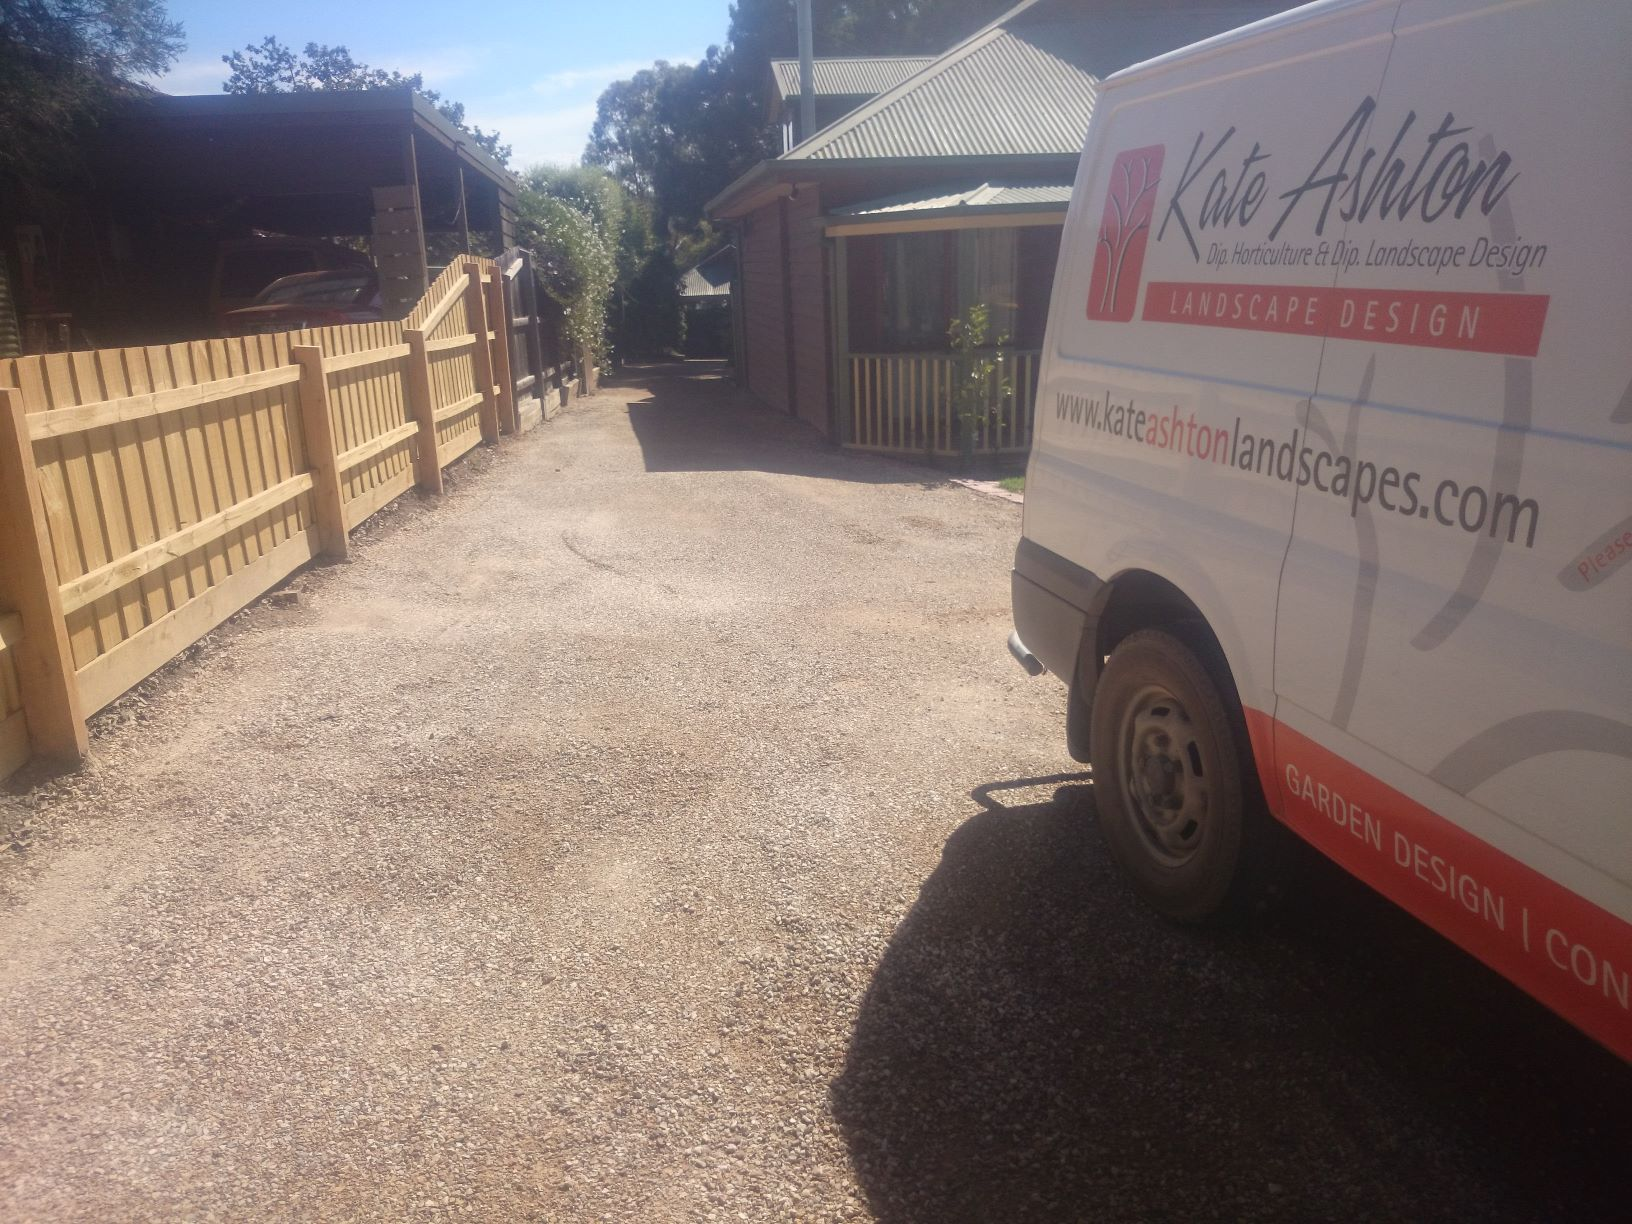 Doamond Creek driveway resufacing, Driveway improvements, compacted sandstone,